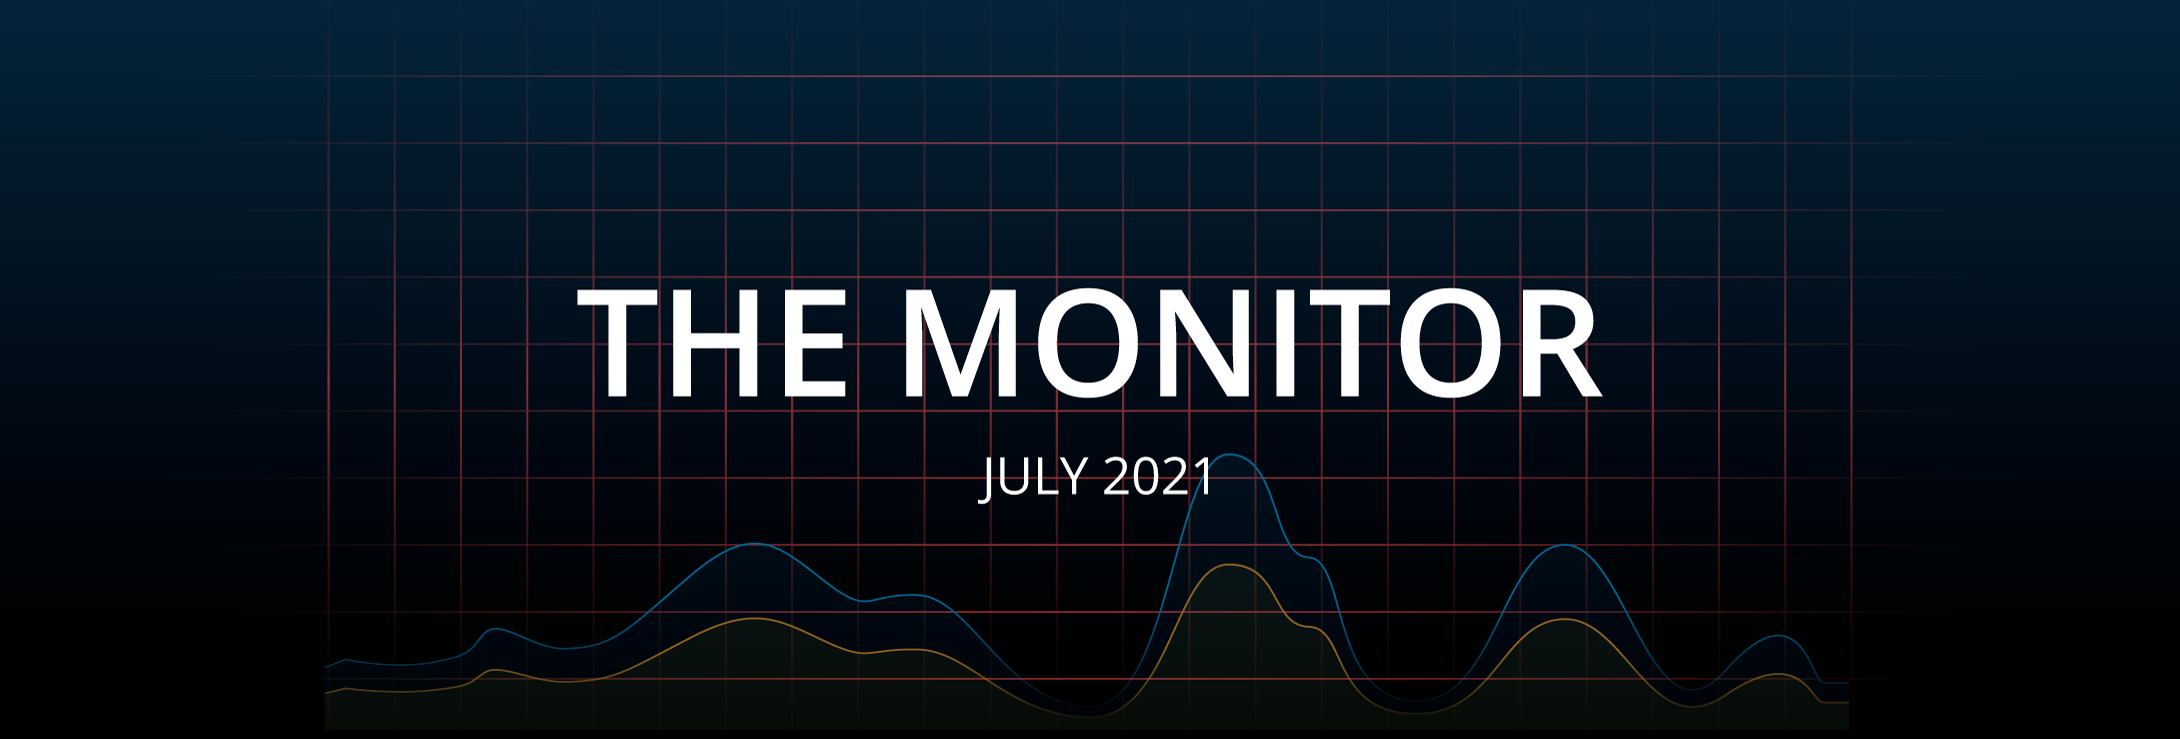 The Monitor - July 2021